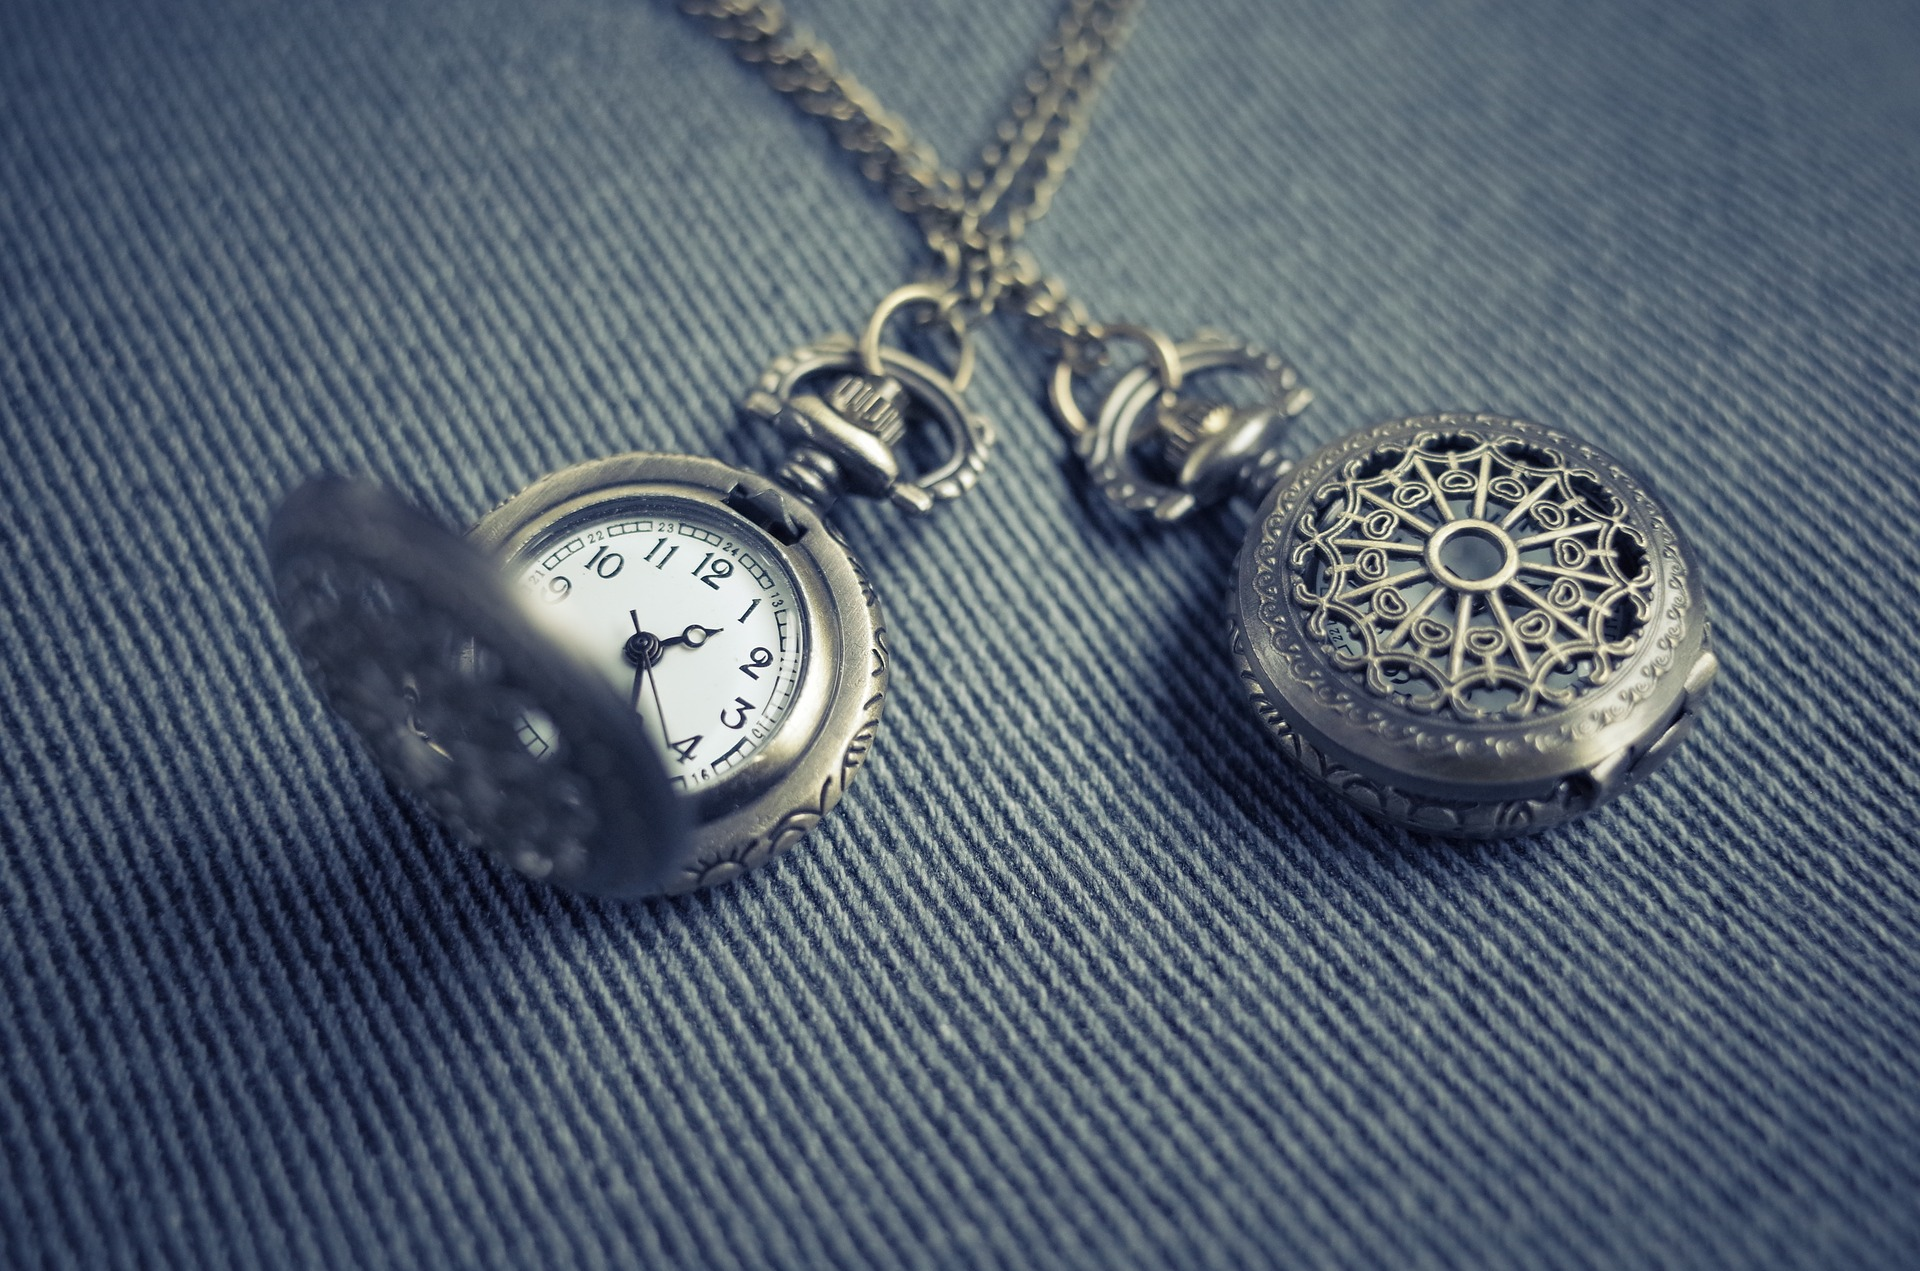 pocket-watch-2569573_1920